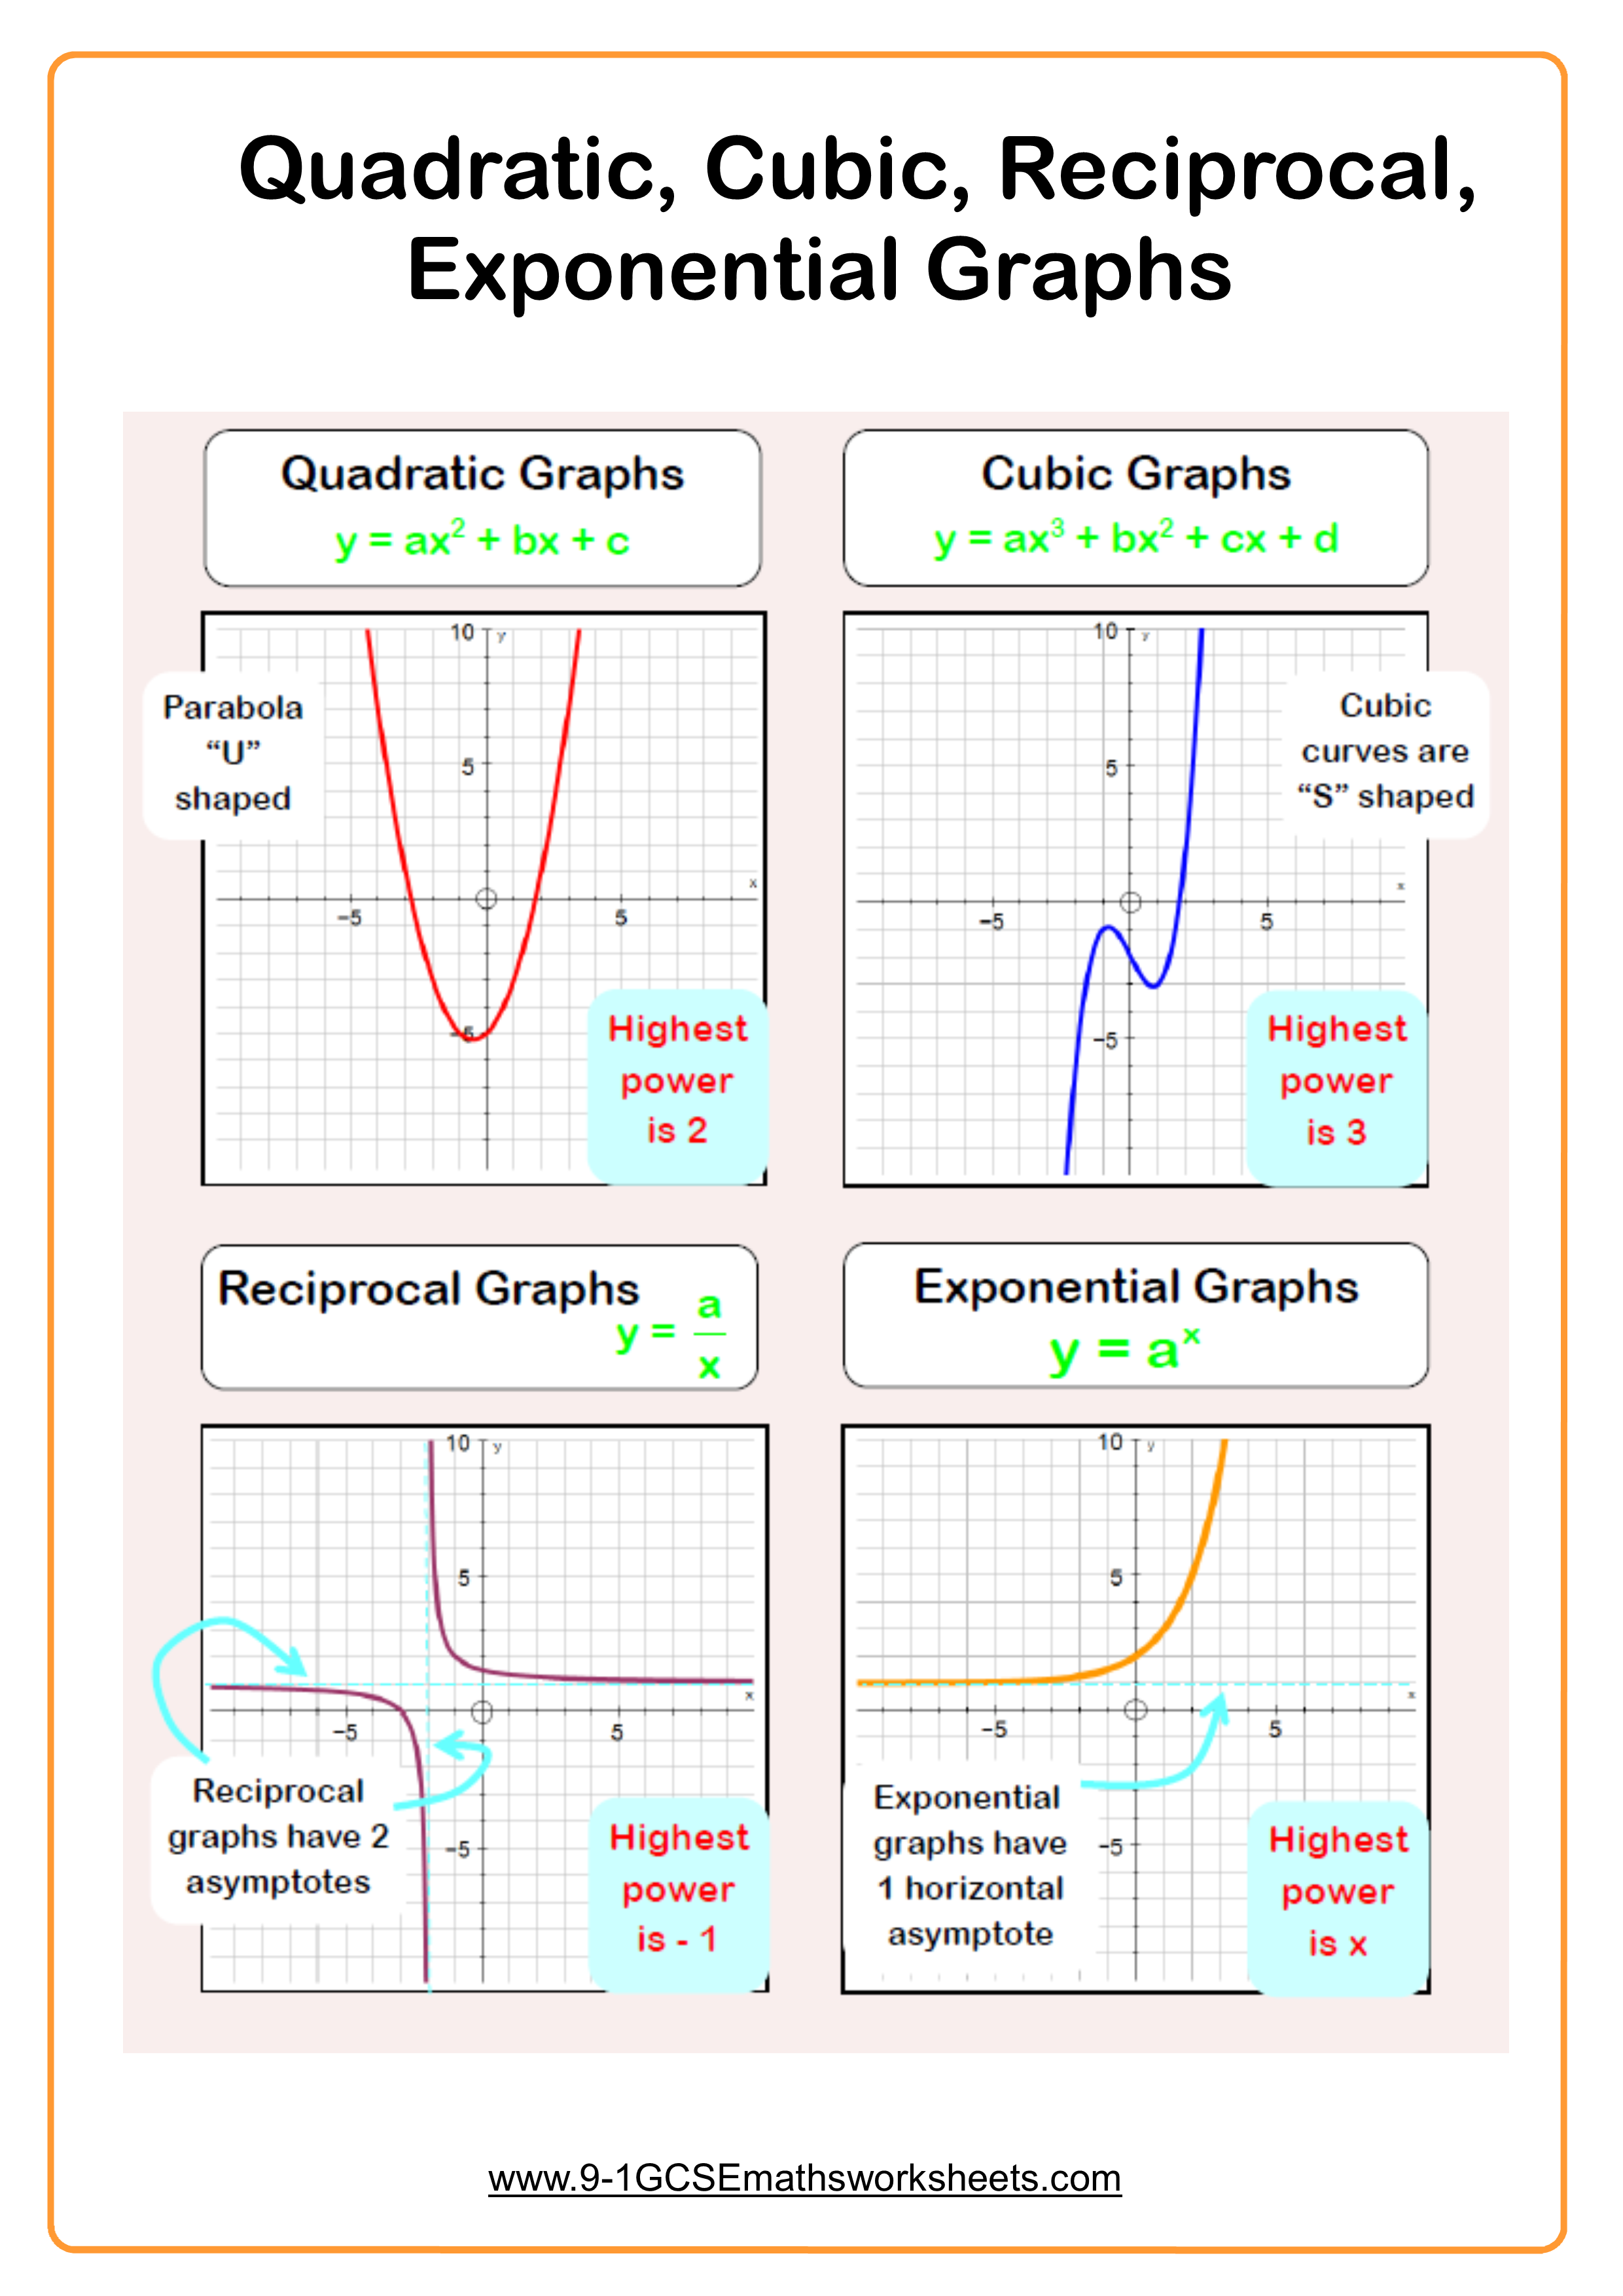 Cubic Graphs example